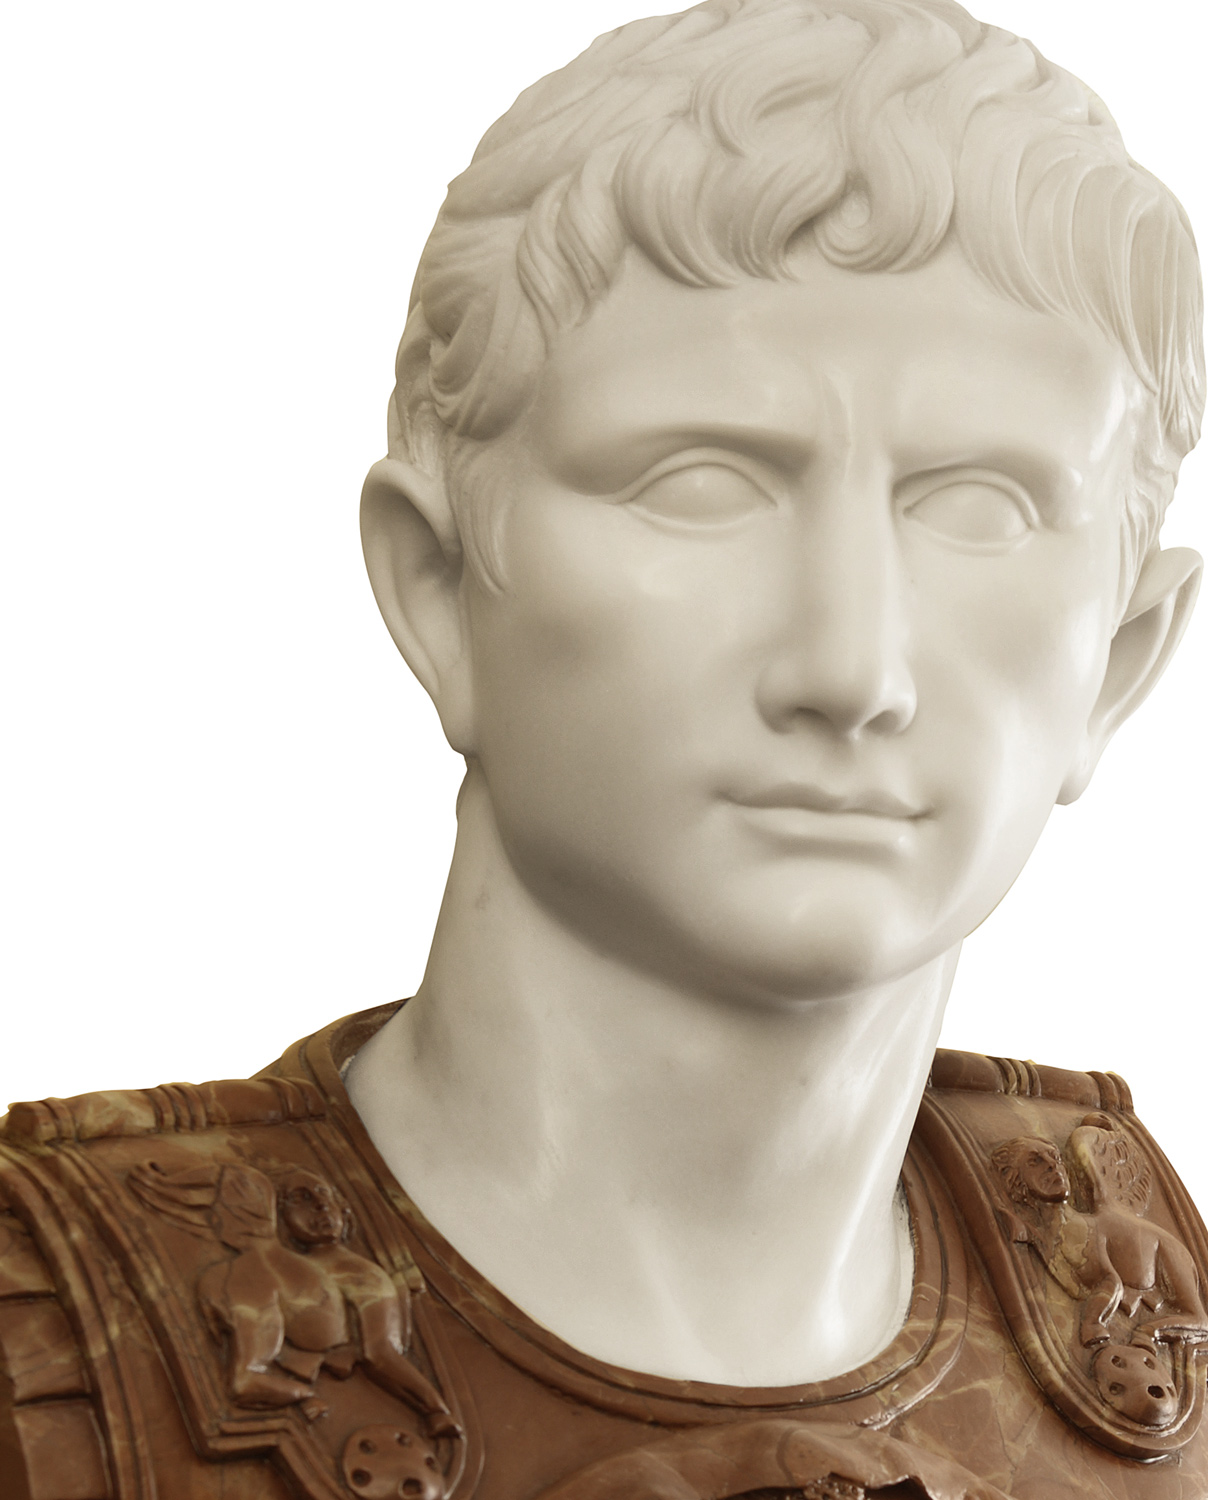 Caesar Augustus bust. Marble sculpture for sale, Pietro Bazzanti Art Gallery, Florence, Italy